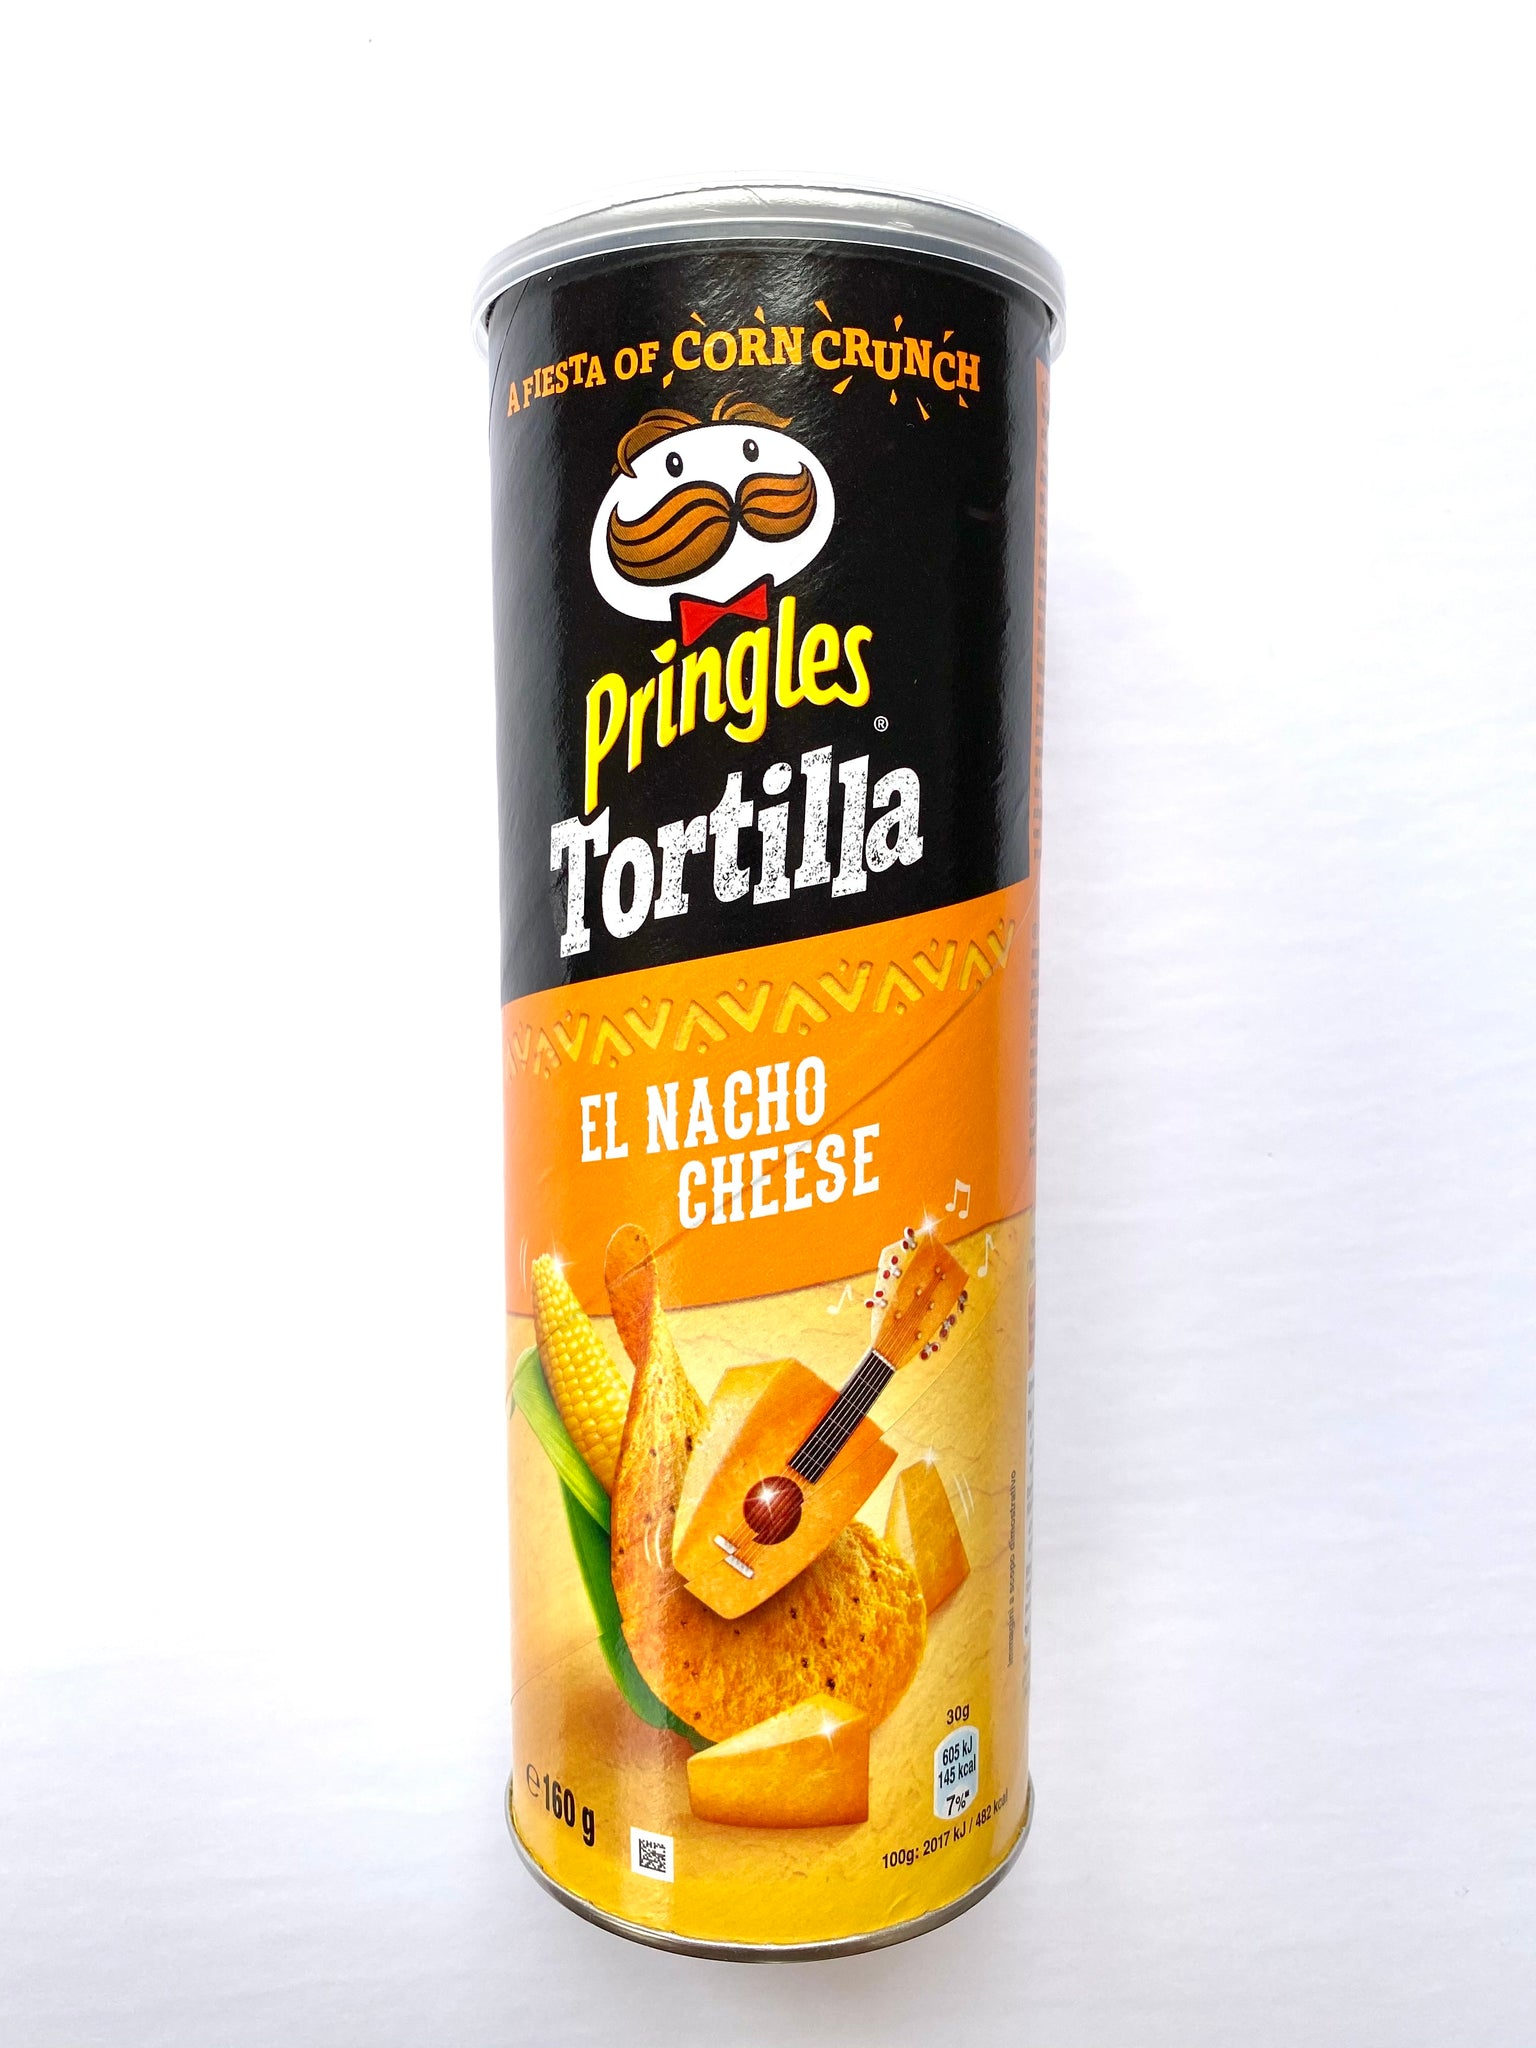 Pringles Tortilla El Nacho Cheese (UK)